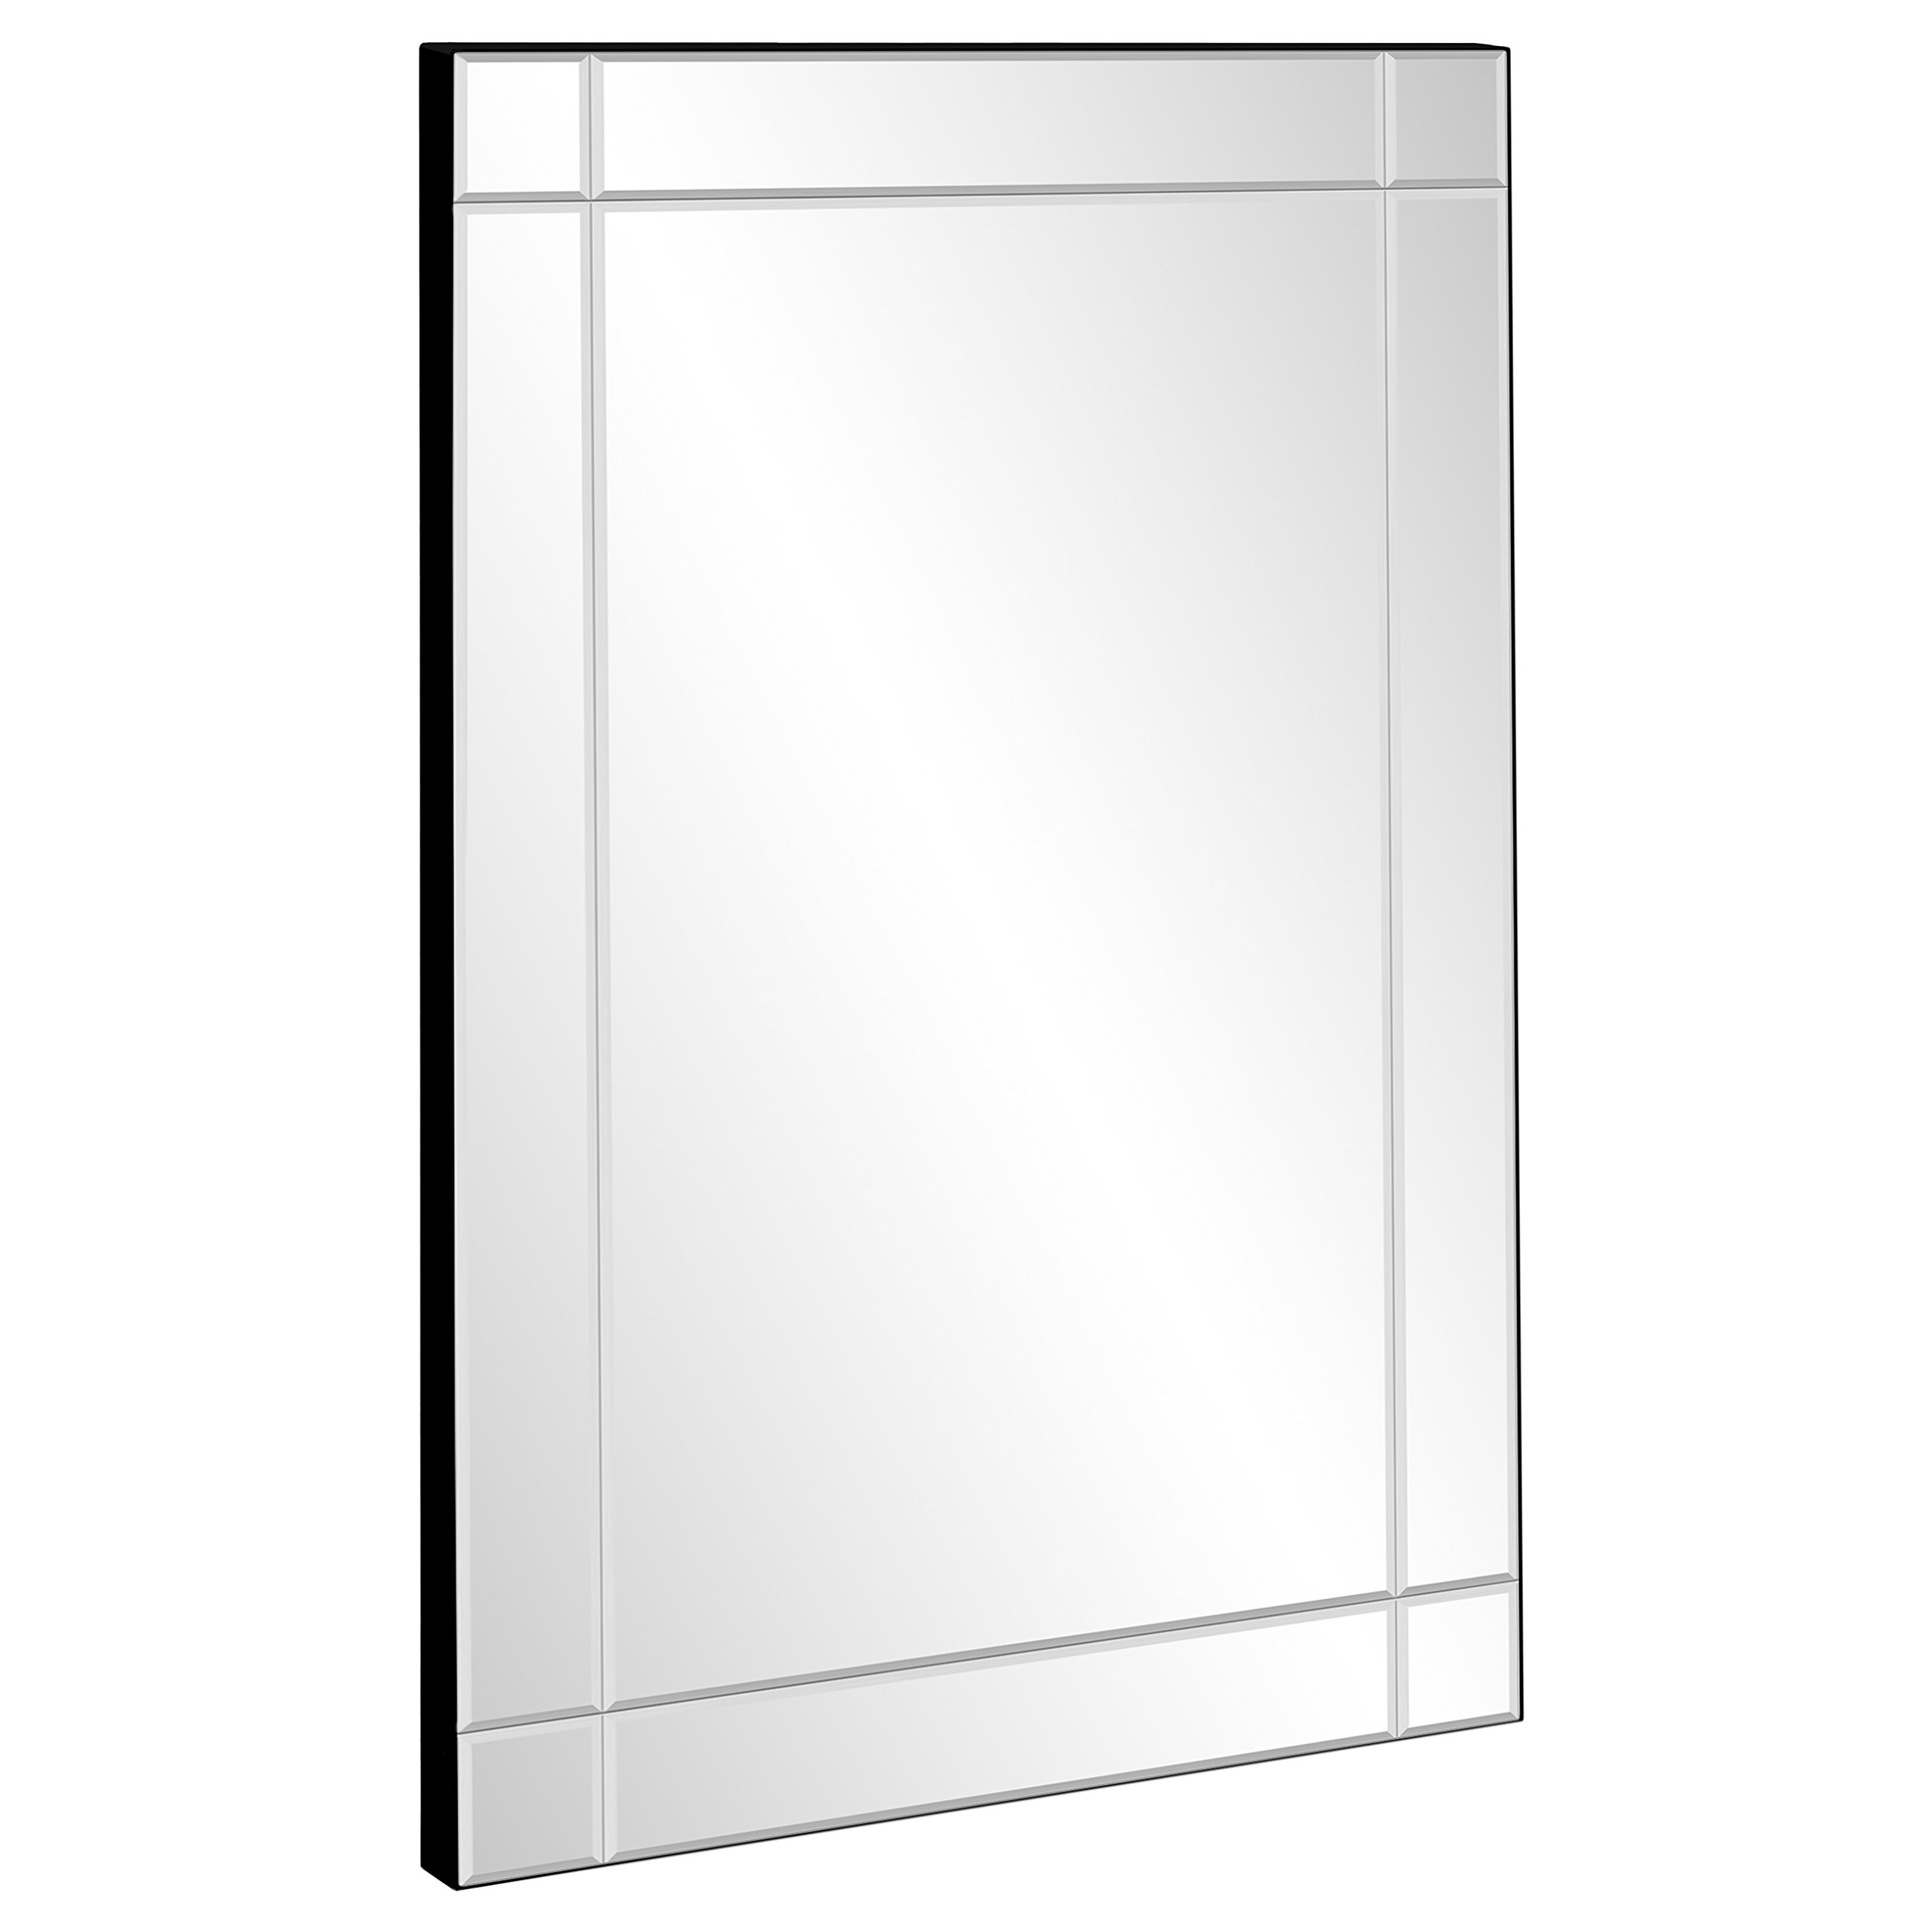 Best Choice Products 36''x24'' Rectangular Bedroom Bathroom Entryway Decorative Frameless Wall Mirror